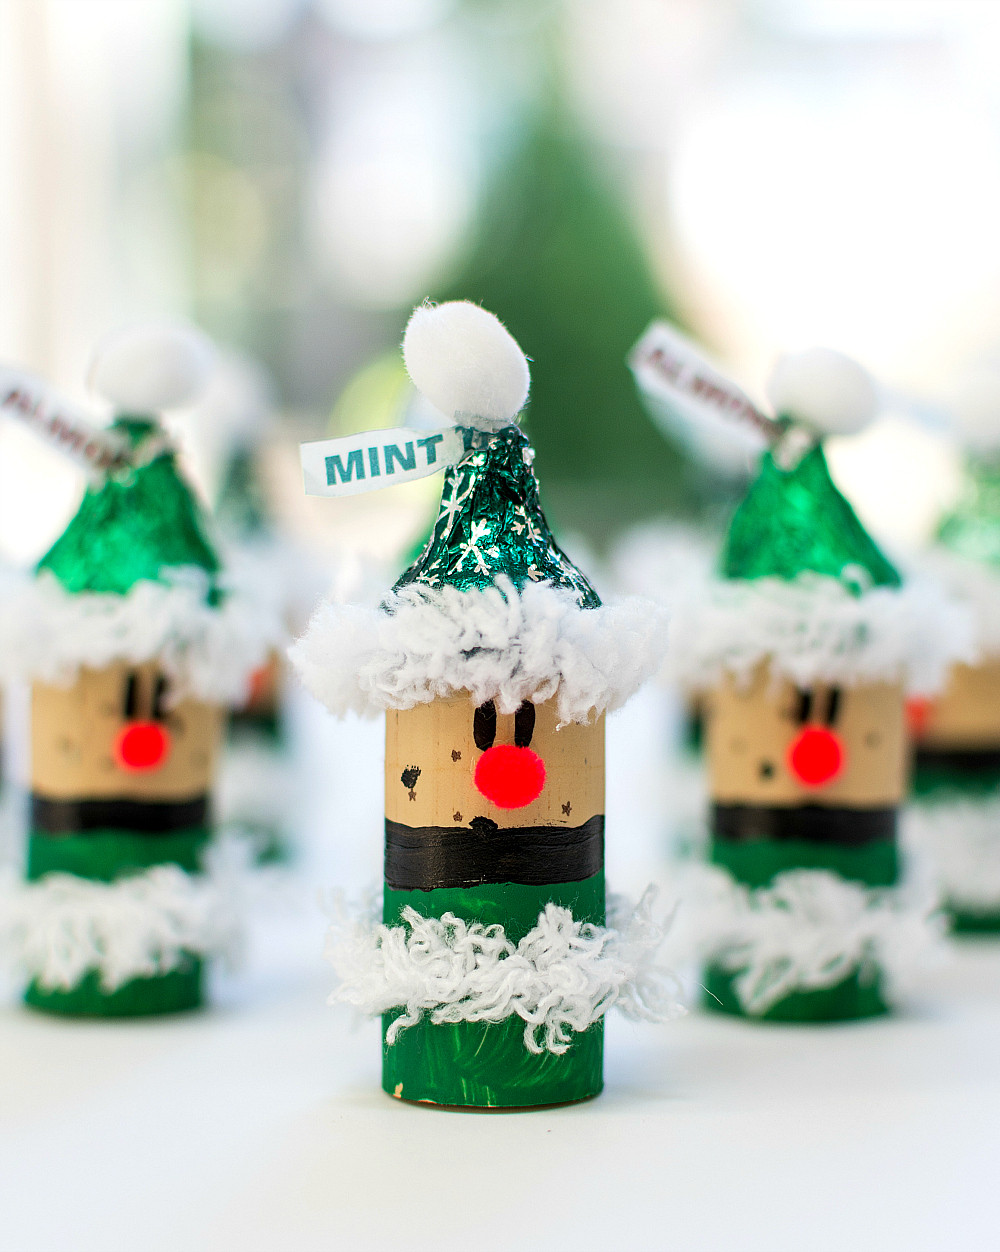 Best ideas about Kids Christmas Craft Ideas . Save or Pin Christmas Crafts with Kids Now.